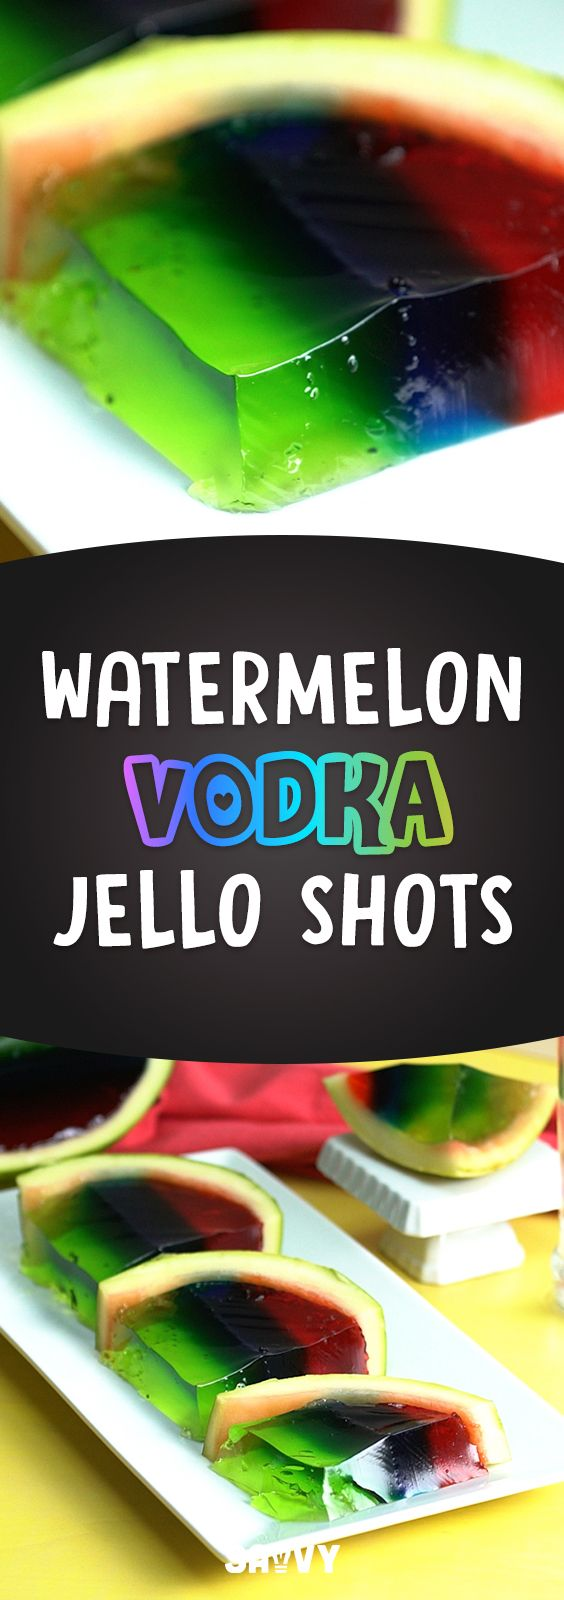 """This is so cool! Watermelon Vodka Shots definitely have that """"wow"""" factor that will amaze your friends, while at the same time being super simple to make. Definitely a win-win recipe in my books!  You can make these without alcohol for a fun kids' party treat, and make sure to save the scooped out watermelon for snacking on later - it's delish! We used vodka in ours, but you can experiment with different kinds of liquor and flavors of jello. Have fun and enjoy responsibly!"""